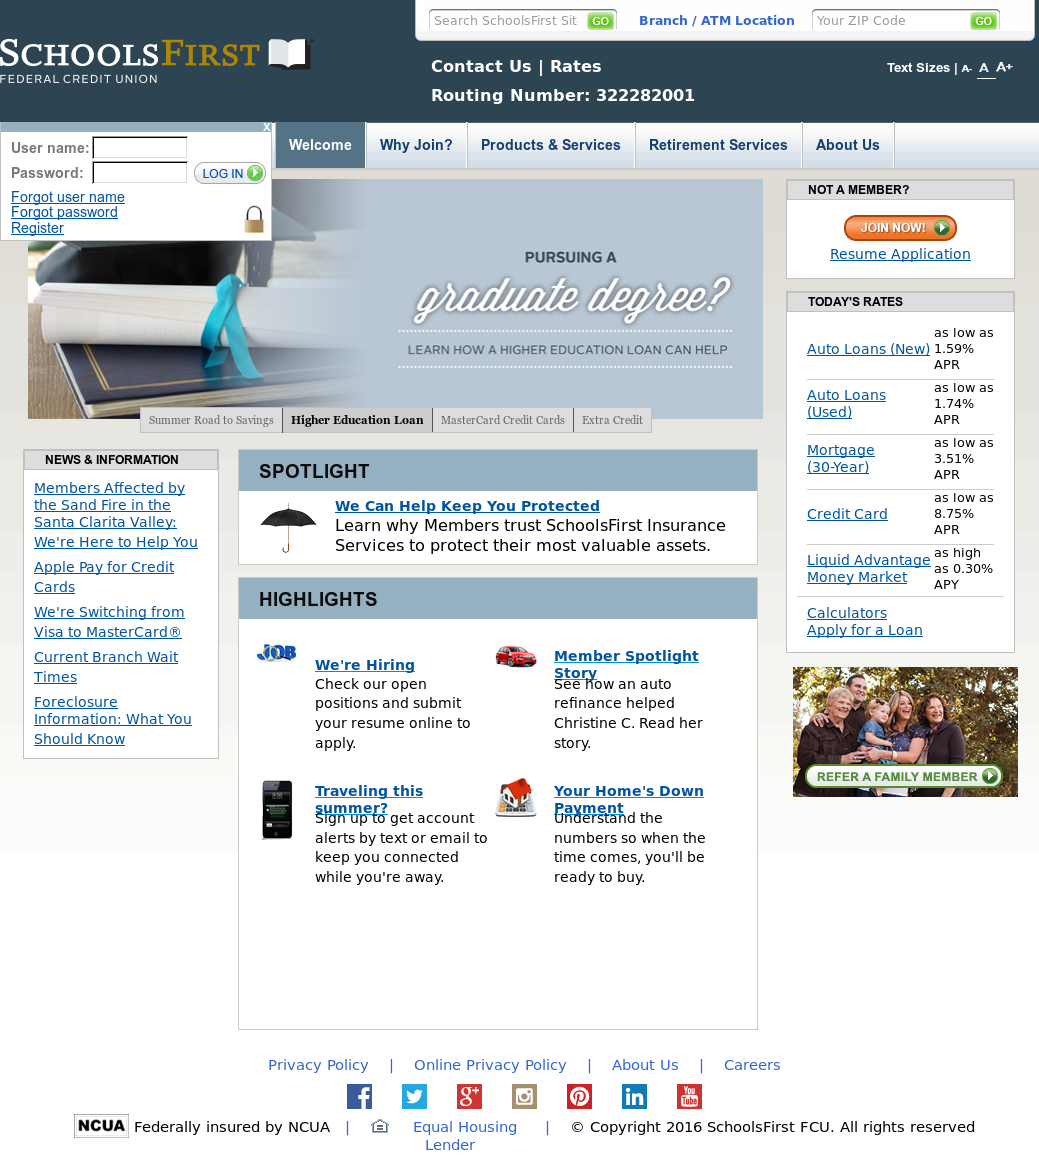 SchoolsFirst Federal Credit Union website history